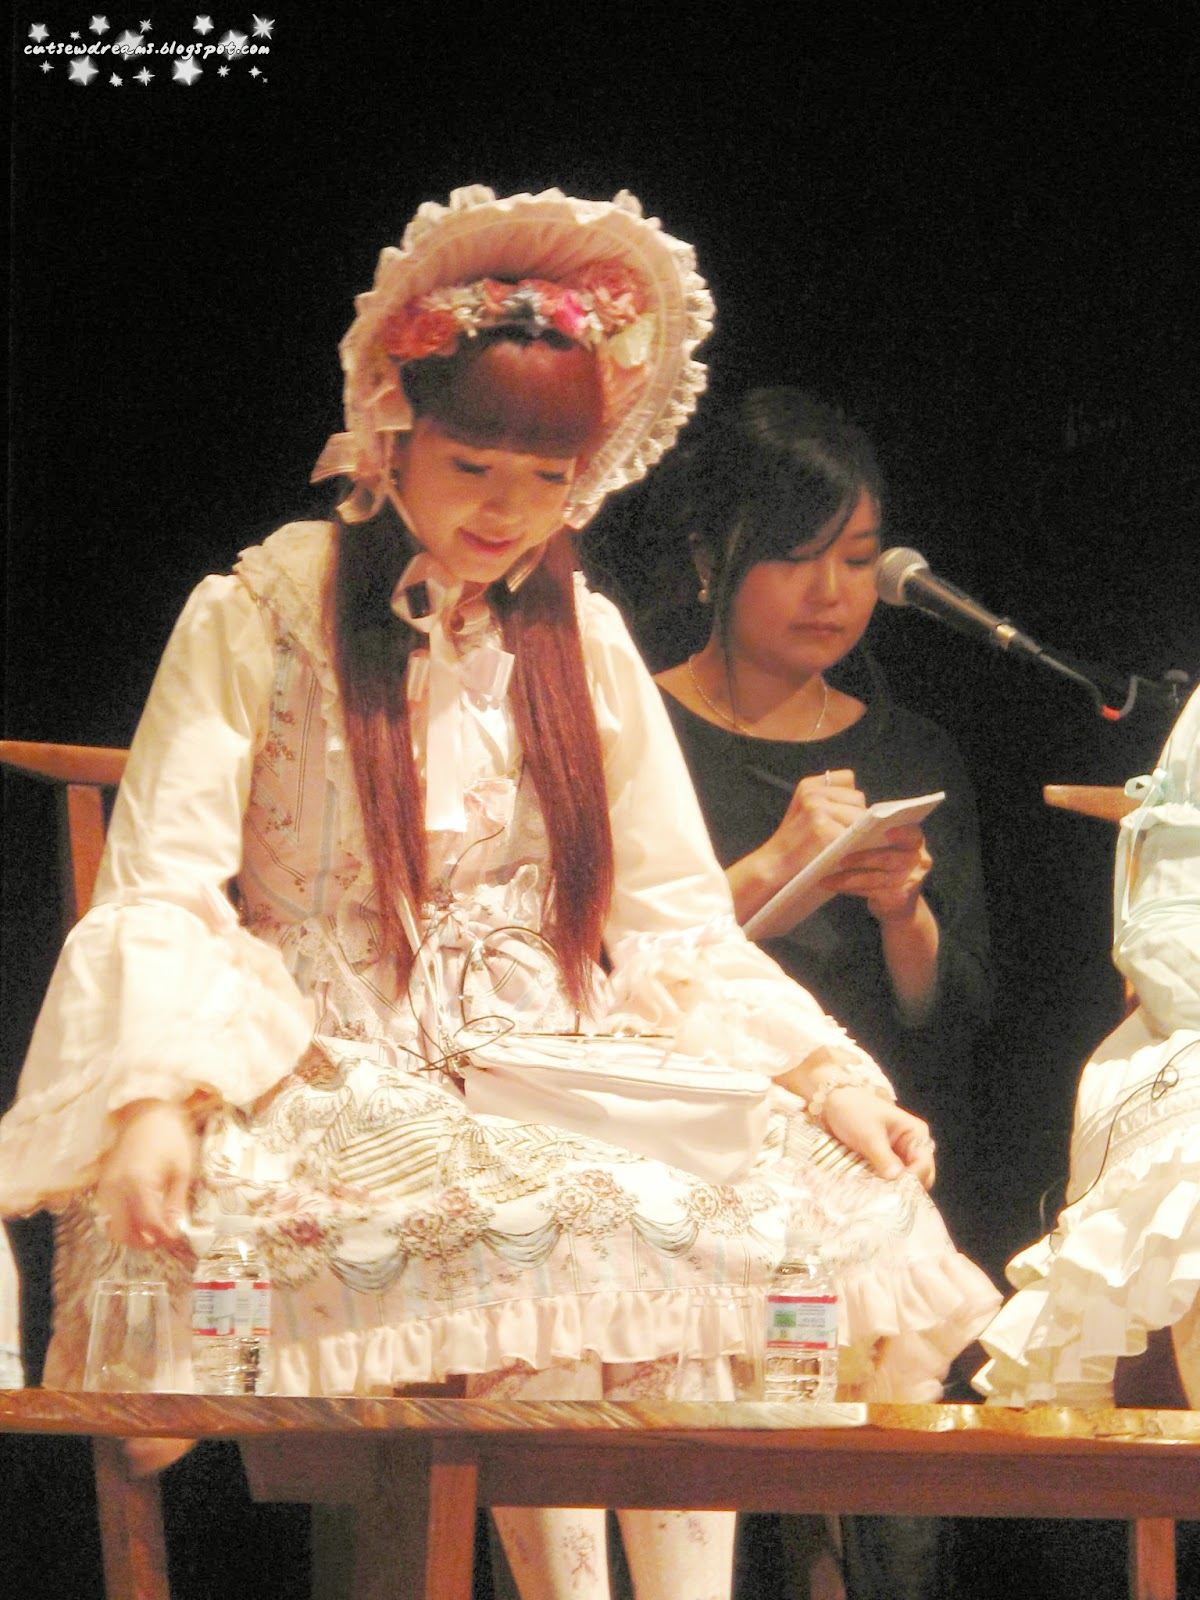 misako aoki,aoki misako,misakoaoki,aokimisako,japan society,japan,society,lecture,lolita lecture,lolita,lolita fashion.fasion,japanese street fashion,street fashion,btssb,ap,baby the stars shine bright,babythestarsshinebright,angelic pretty,angelicpretty, fantastic dolly, memorial cake,jsk,lolita model,fashion show,lolita fashion show,japanese culture,culture,